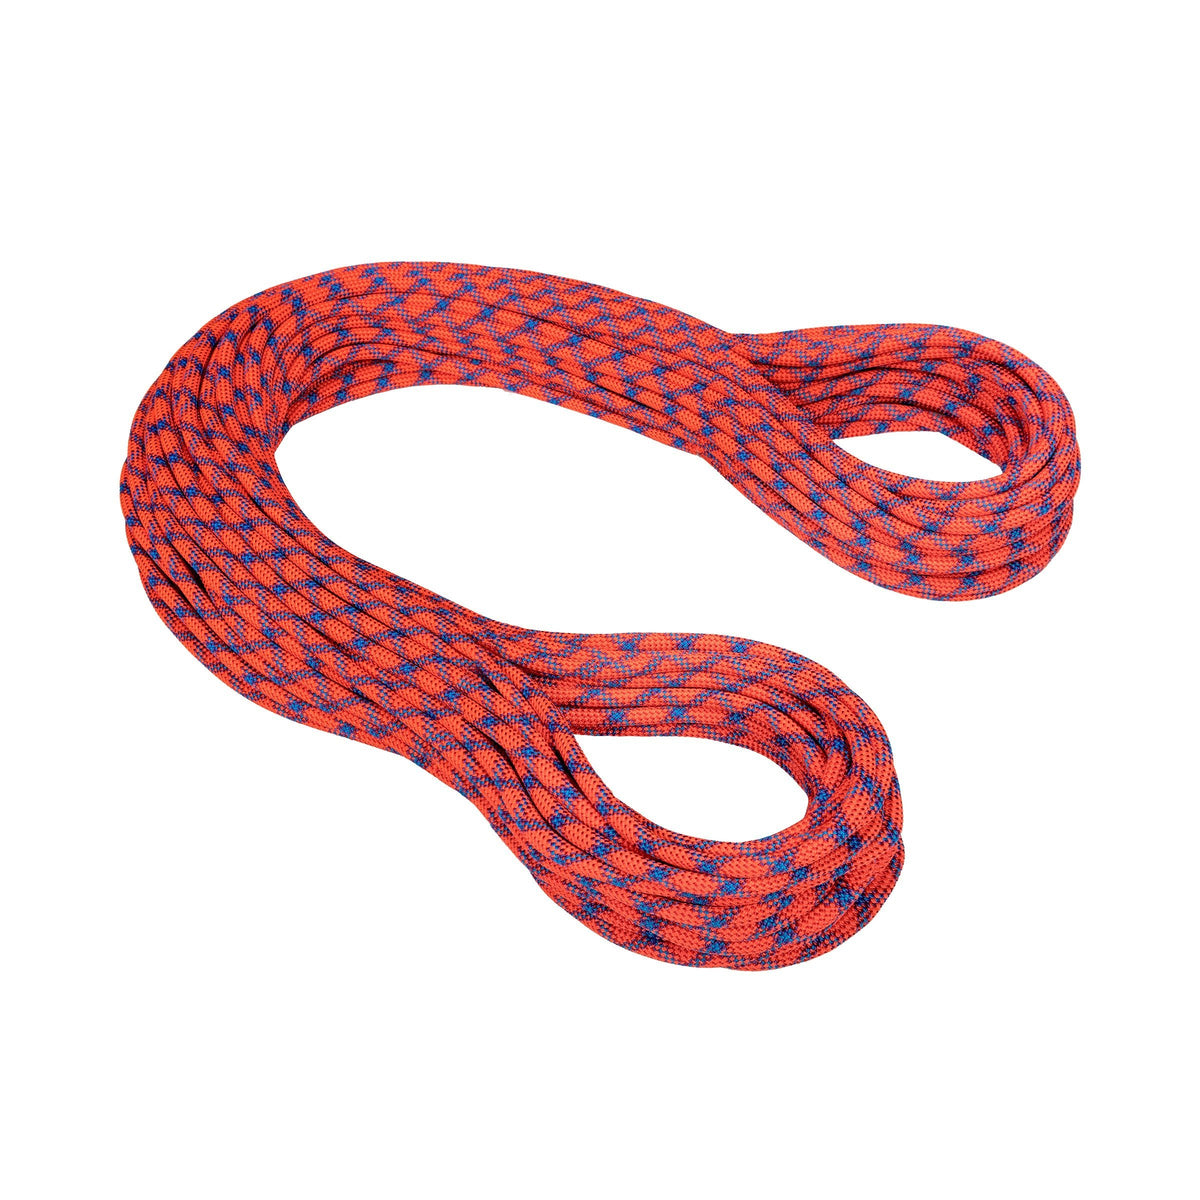 Mammut 9.8mm Eternity 70m PROTECT in Neon Orange/Violet